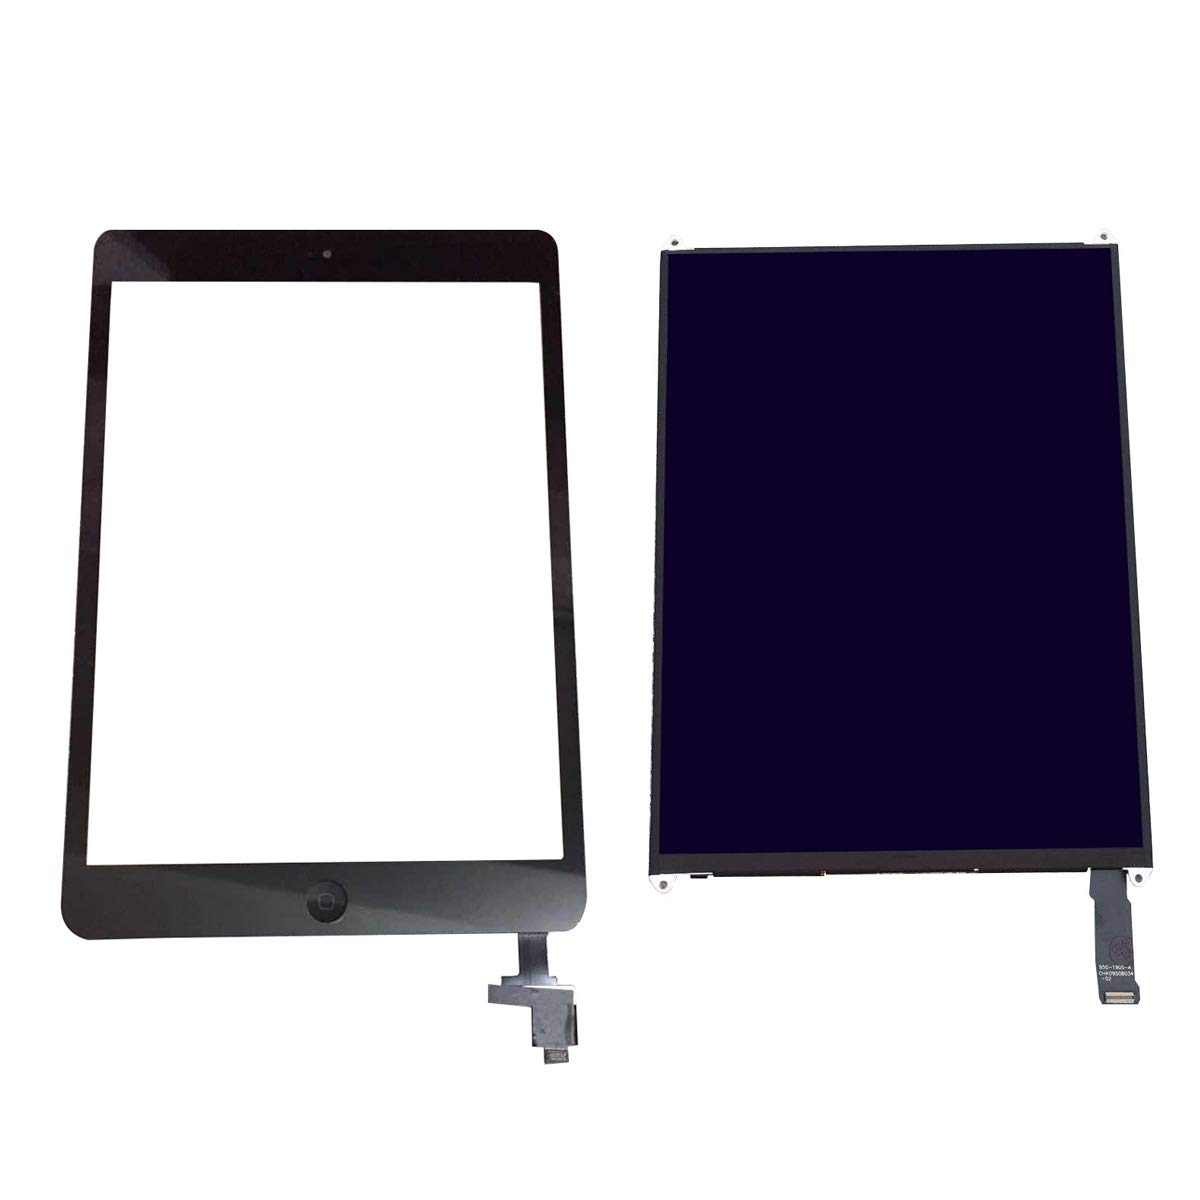 Compatible with LCD Screen Parts for ipad Mini 2, Including A1489 A1490 LCD Screen +Black Touch Screen with IC chip + Home Button + Adhesive Double-Sided Tape + Tool